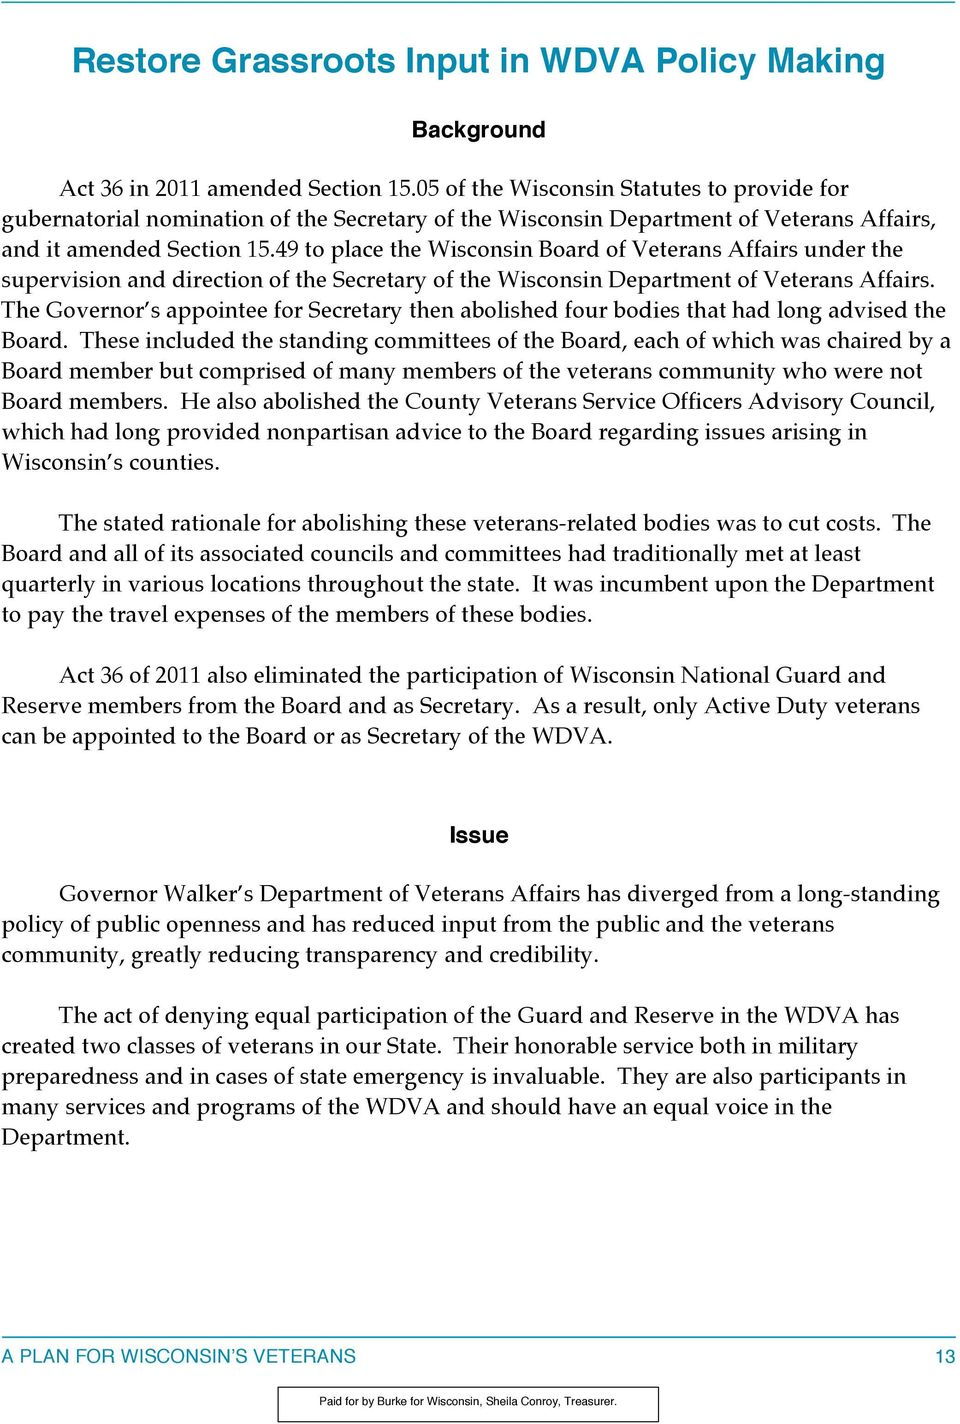 49 to place the Wisconsin Board of Veterans Affairs under the supervision and direction of the Secretary of the Wisconsin Department of Veterans Affairs.